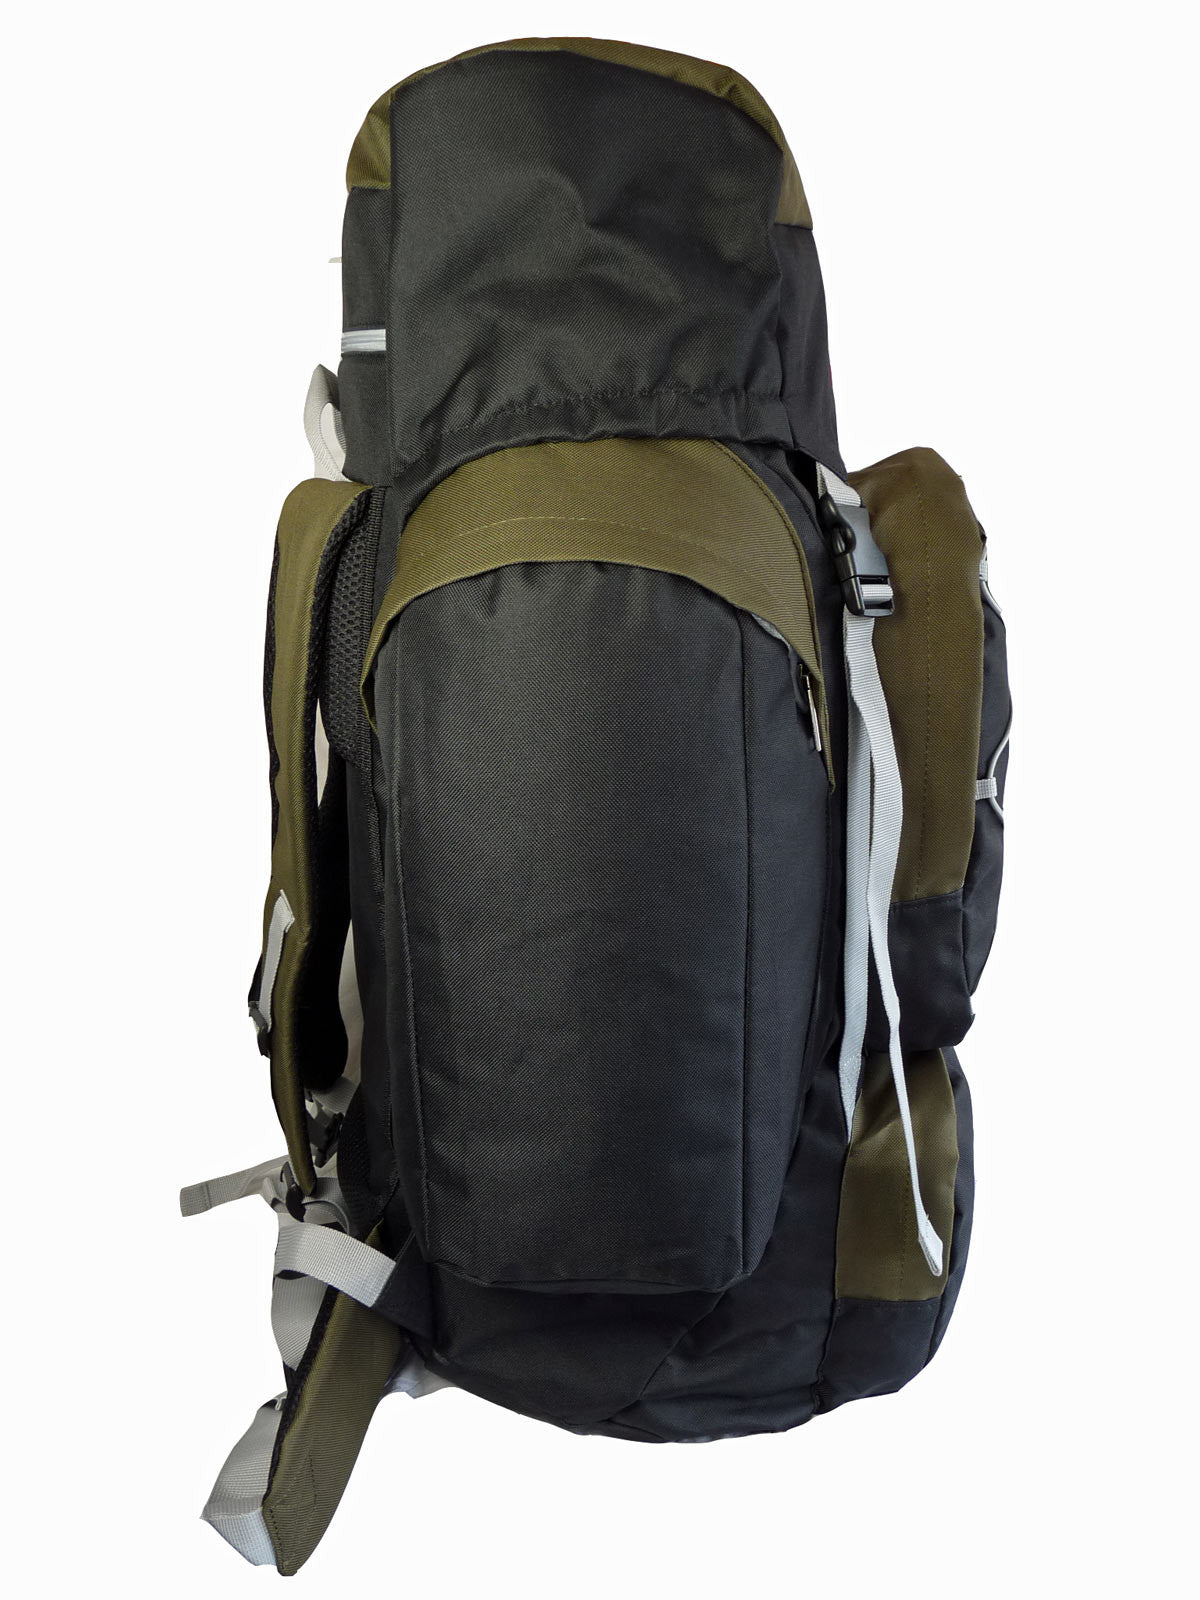 80 100 125 litre backpack green end view